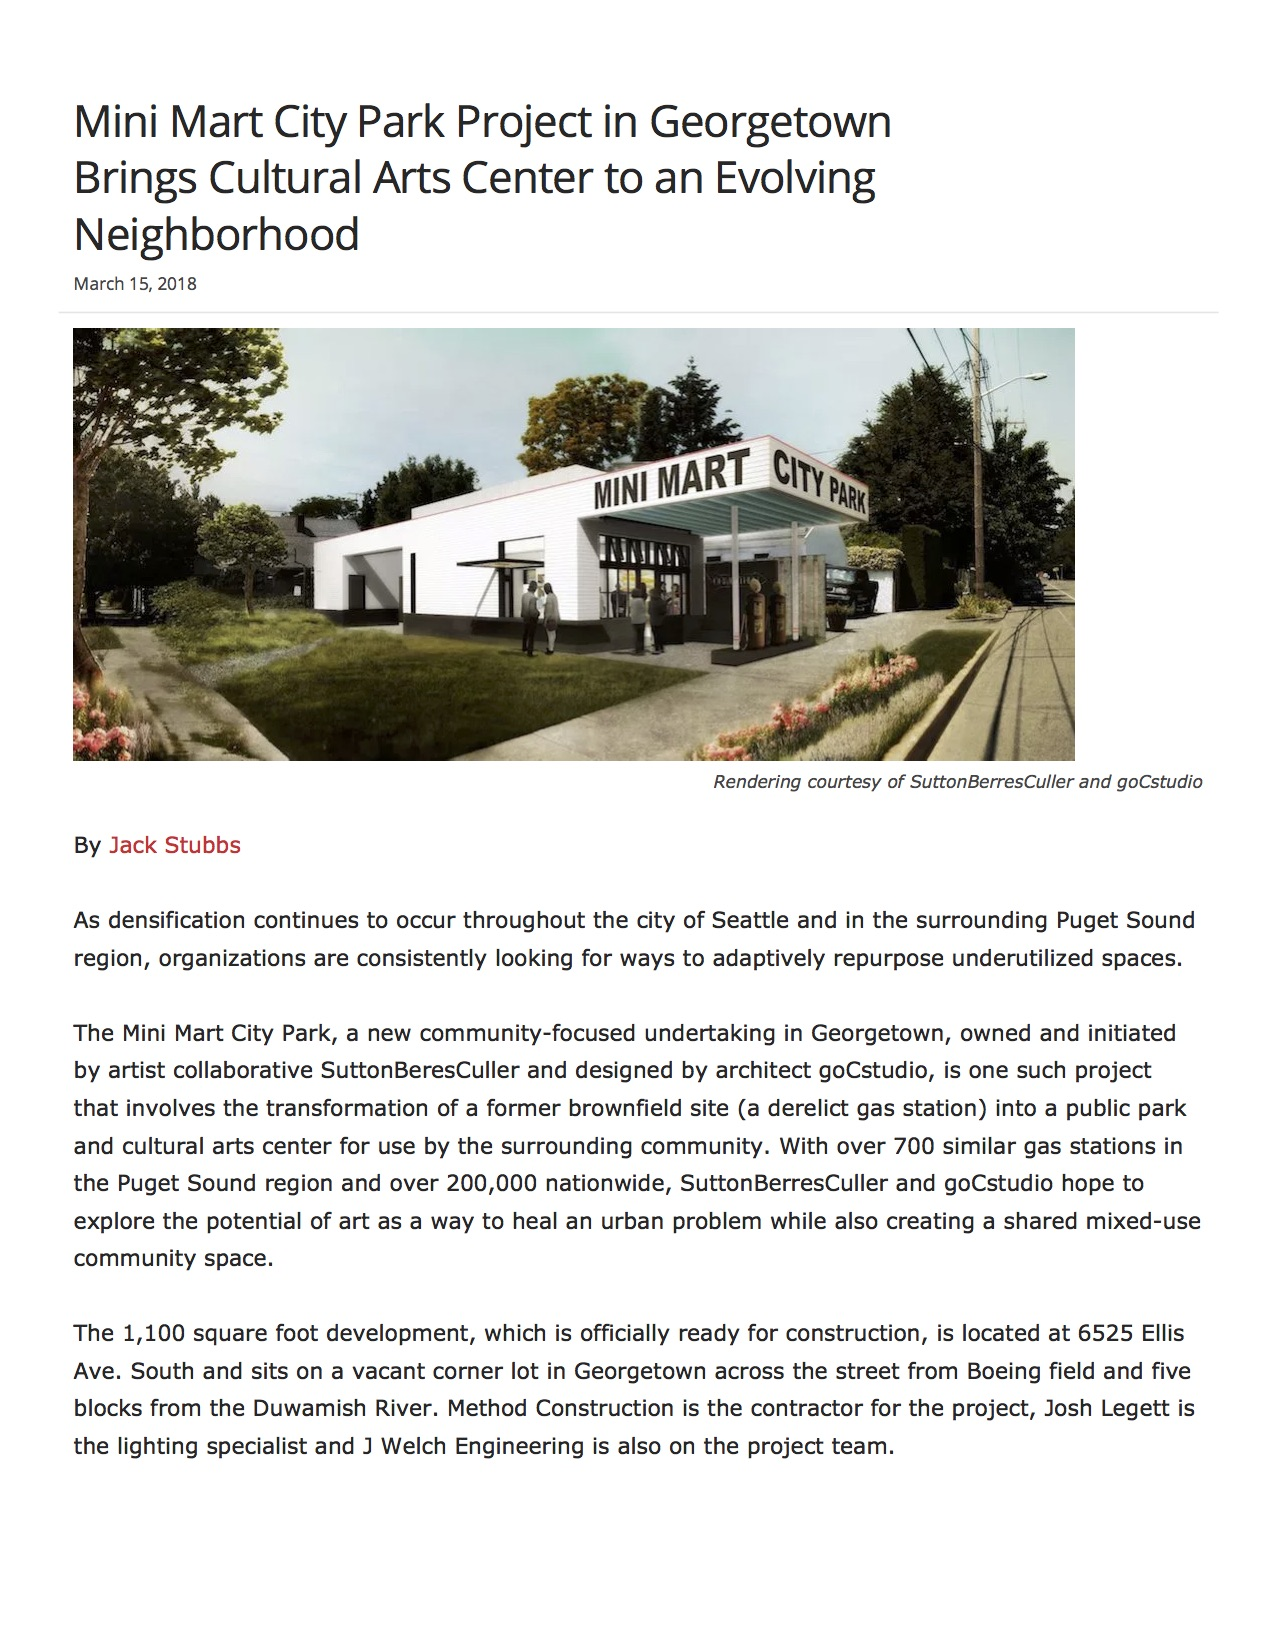 Mini Mart City Park Project in Georgetown Brings Cultural Arts Center to an Evolving Neighborhood - The Registry pg3.jpg